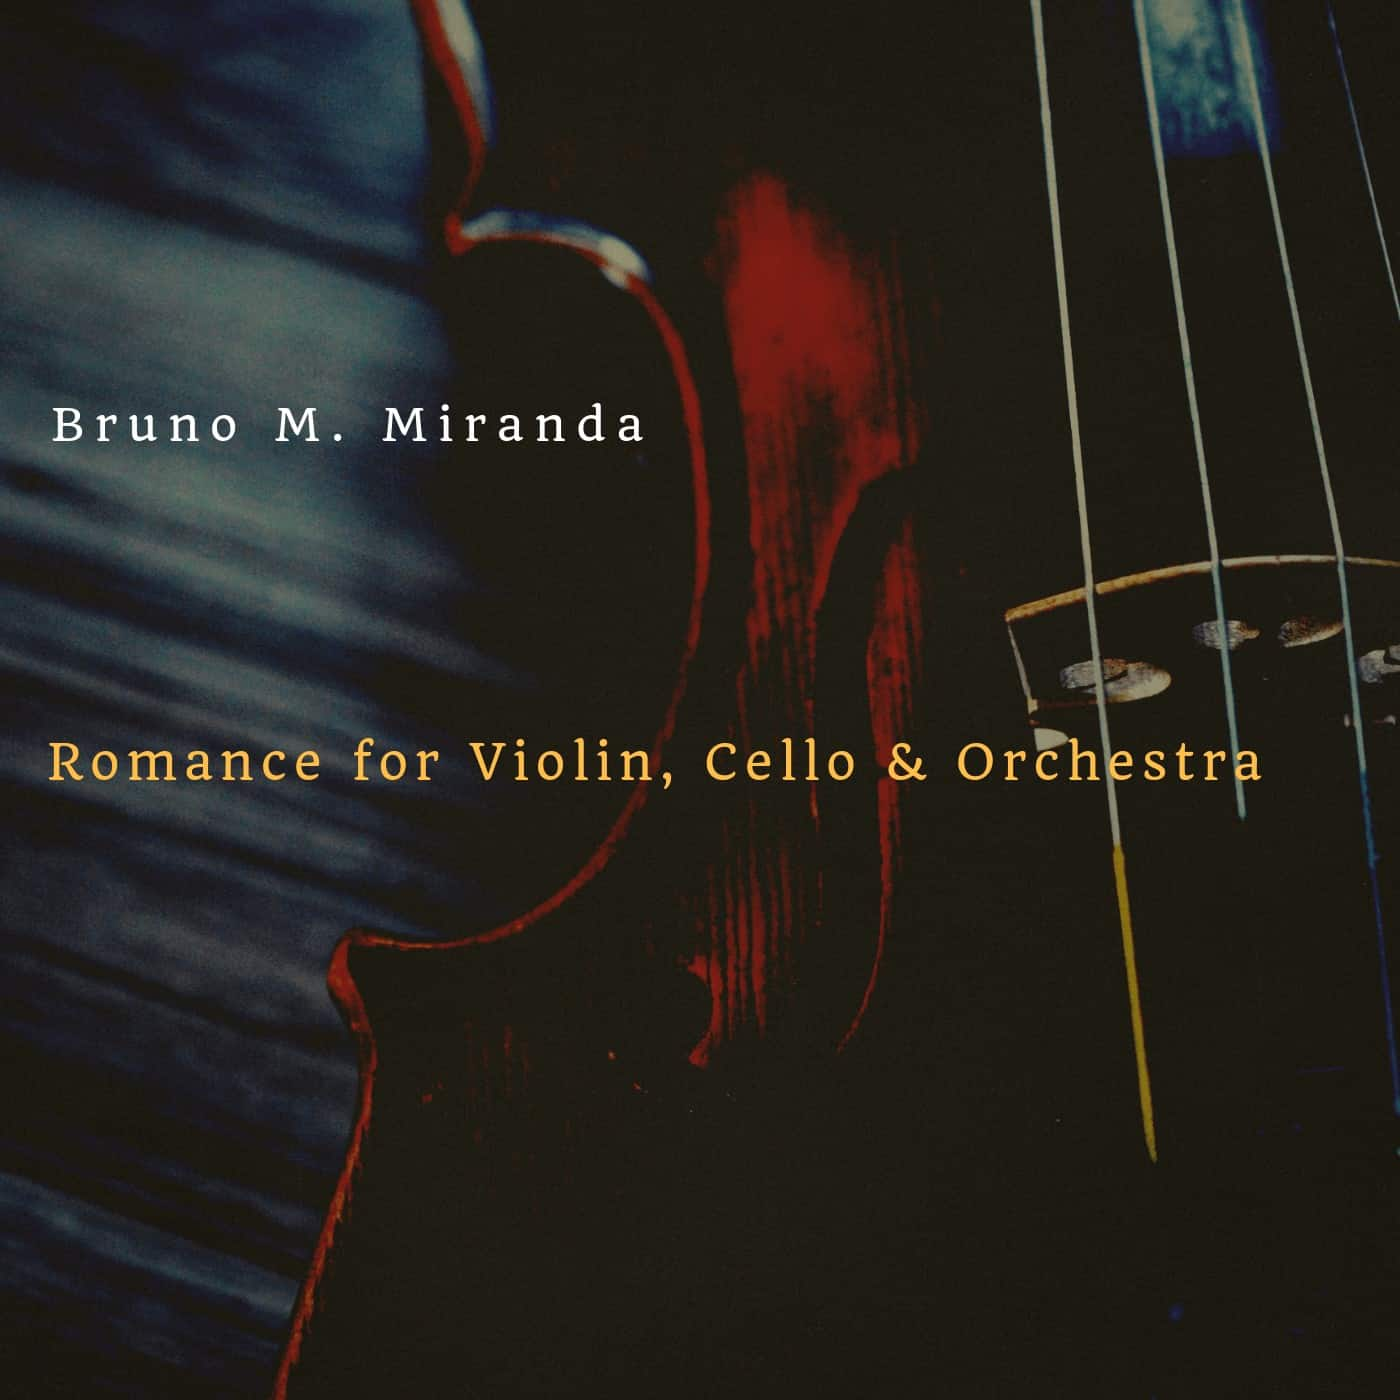 Romance for Violin Cello Orchestra